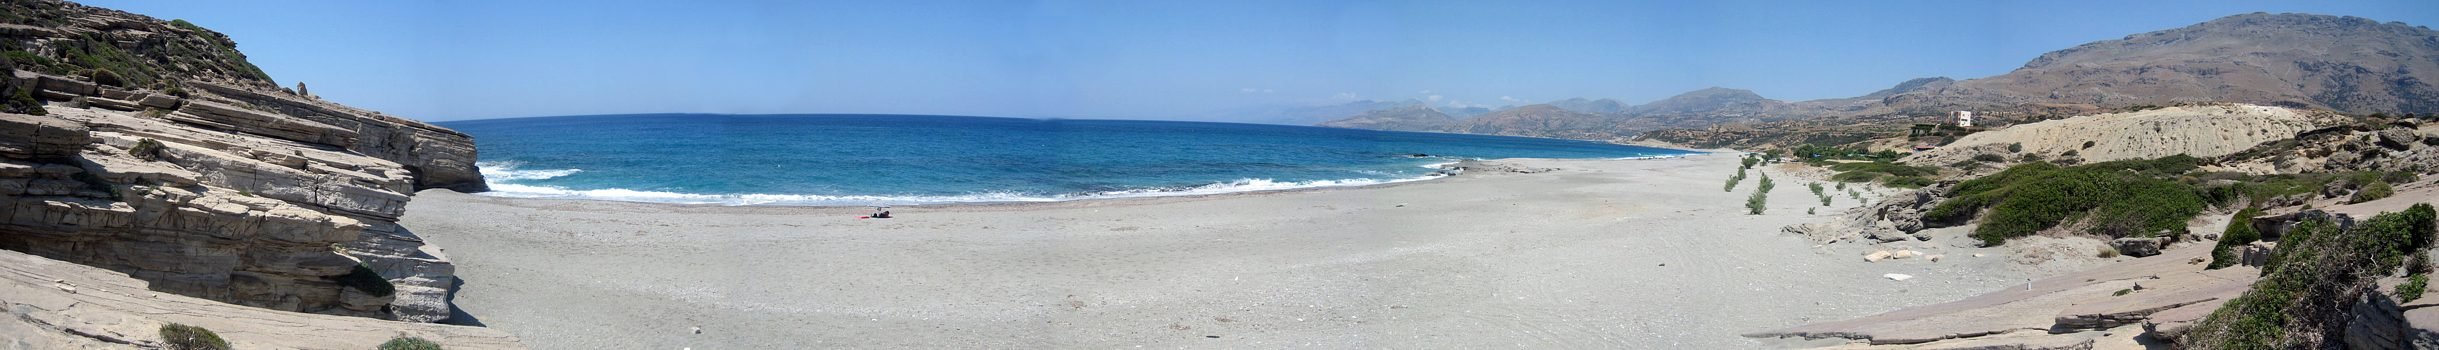 Akoumia Beach